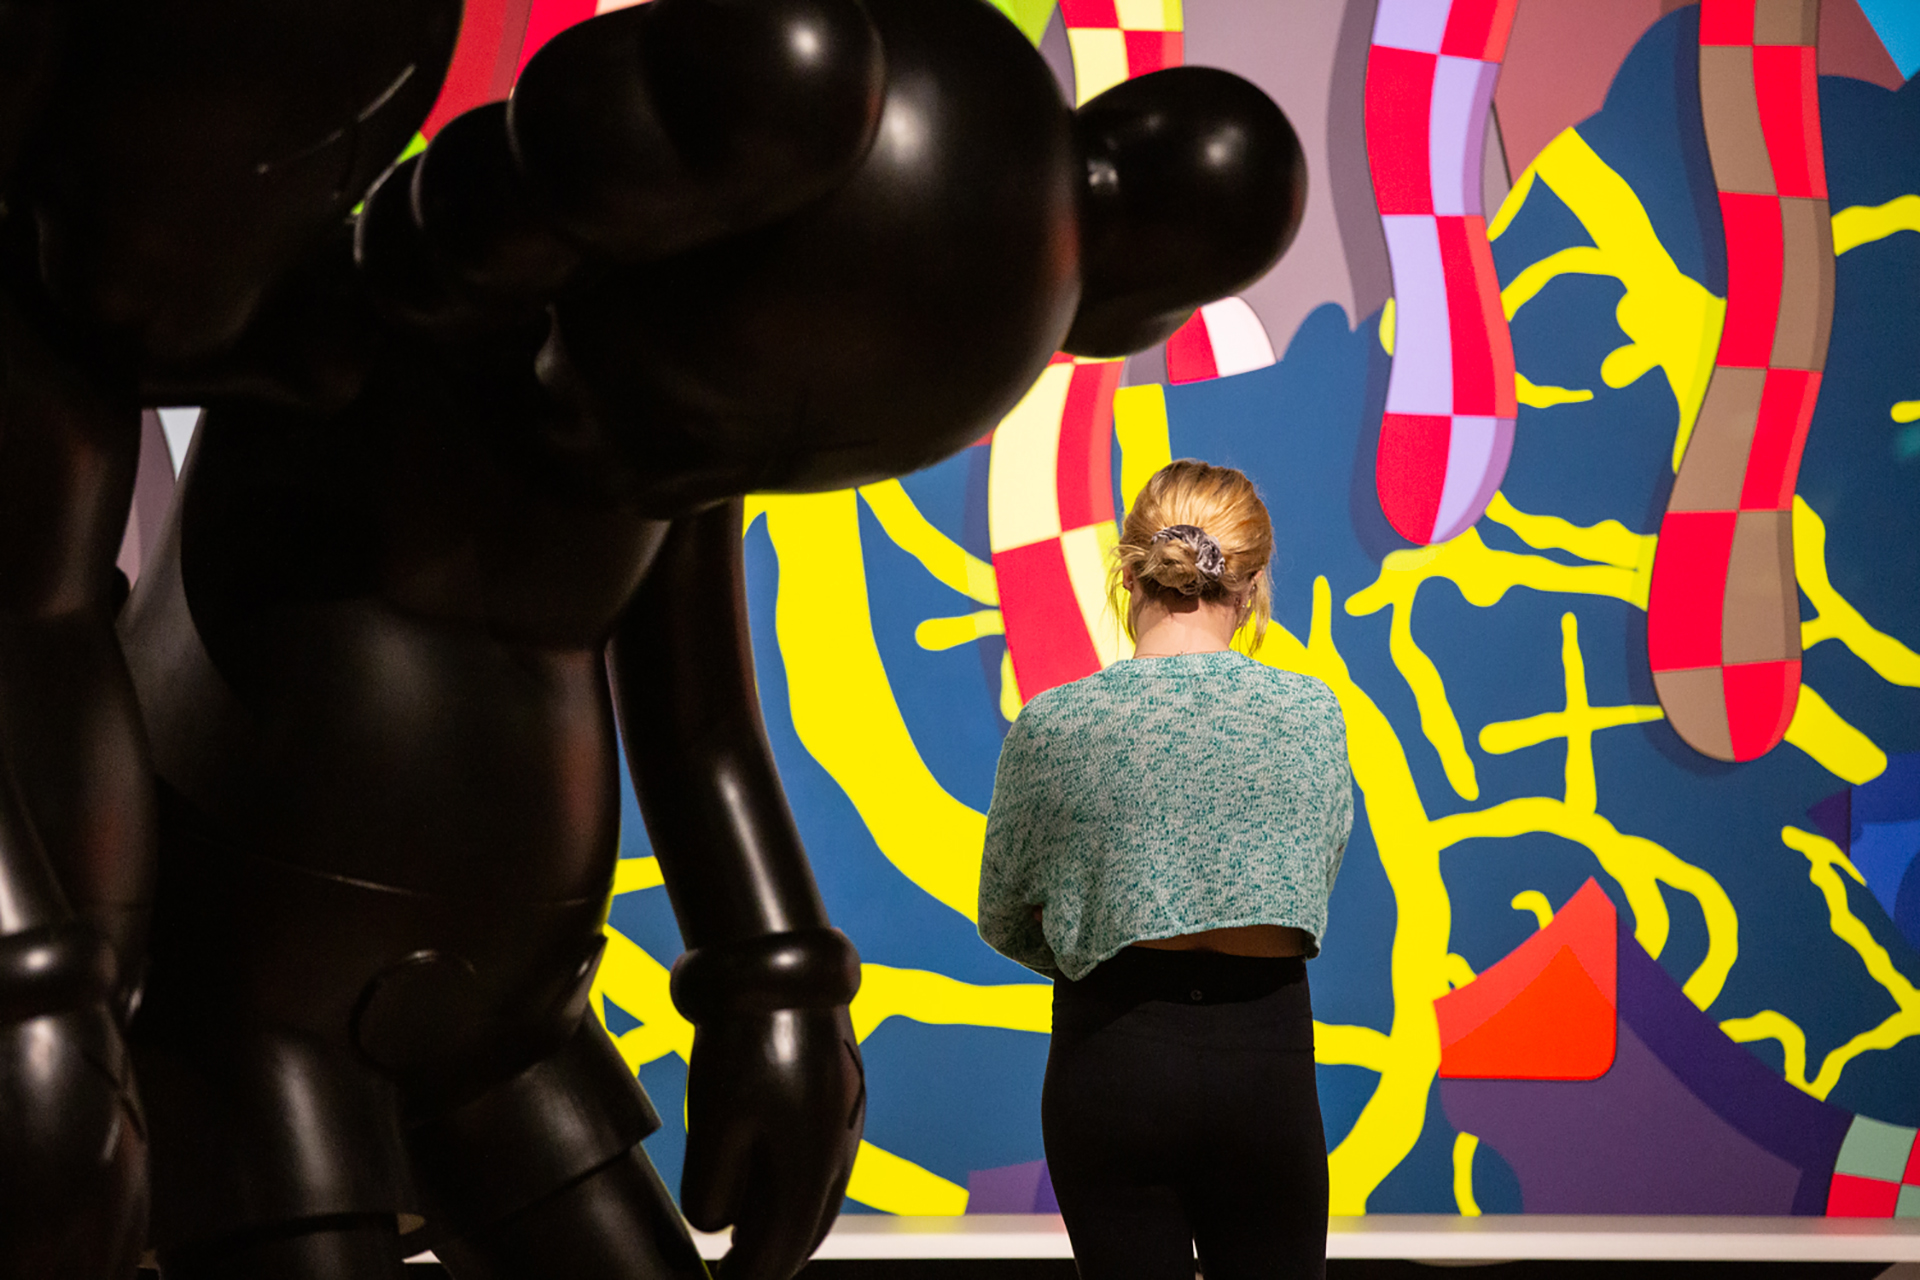 Museum visitor during the exhibition opening of KAWS: ALONE AGAIN, 2019